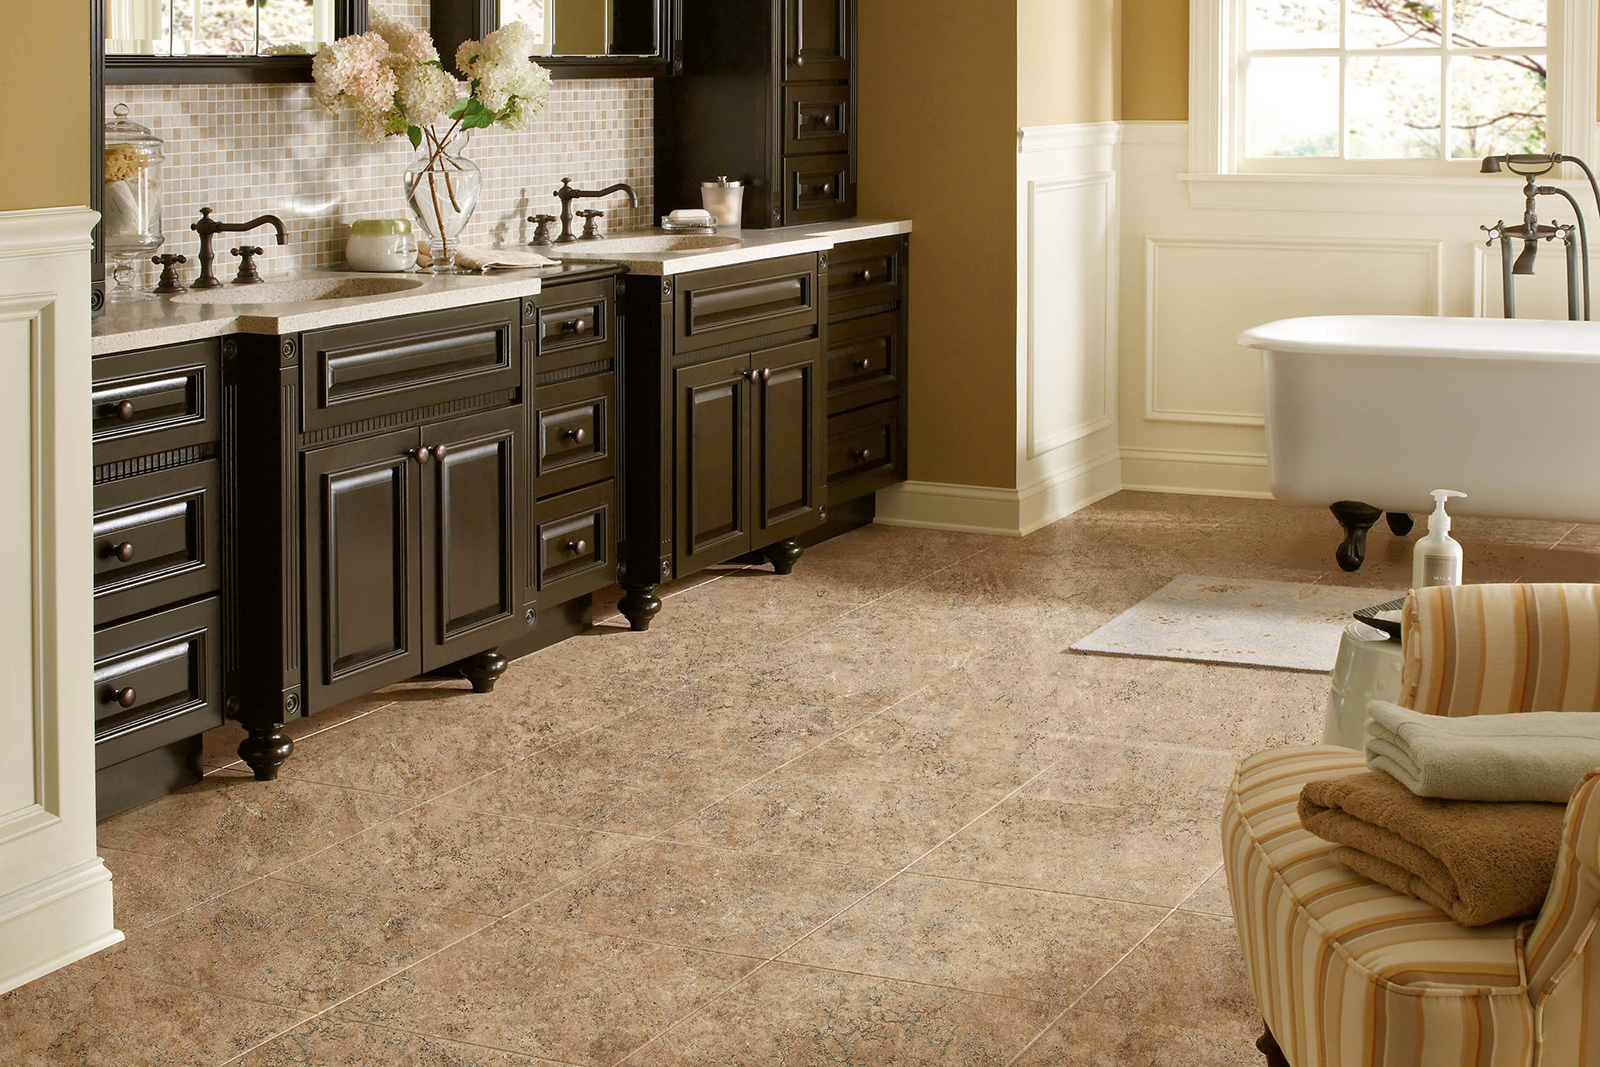 Bathroom Vinyl Flooring Cheap Vinyl Bathroom Flooring